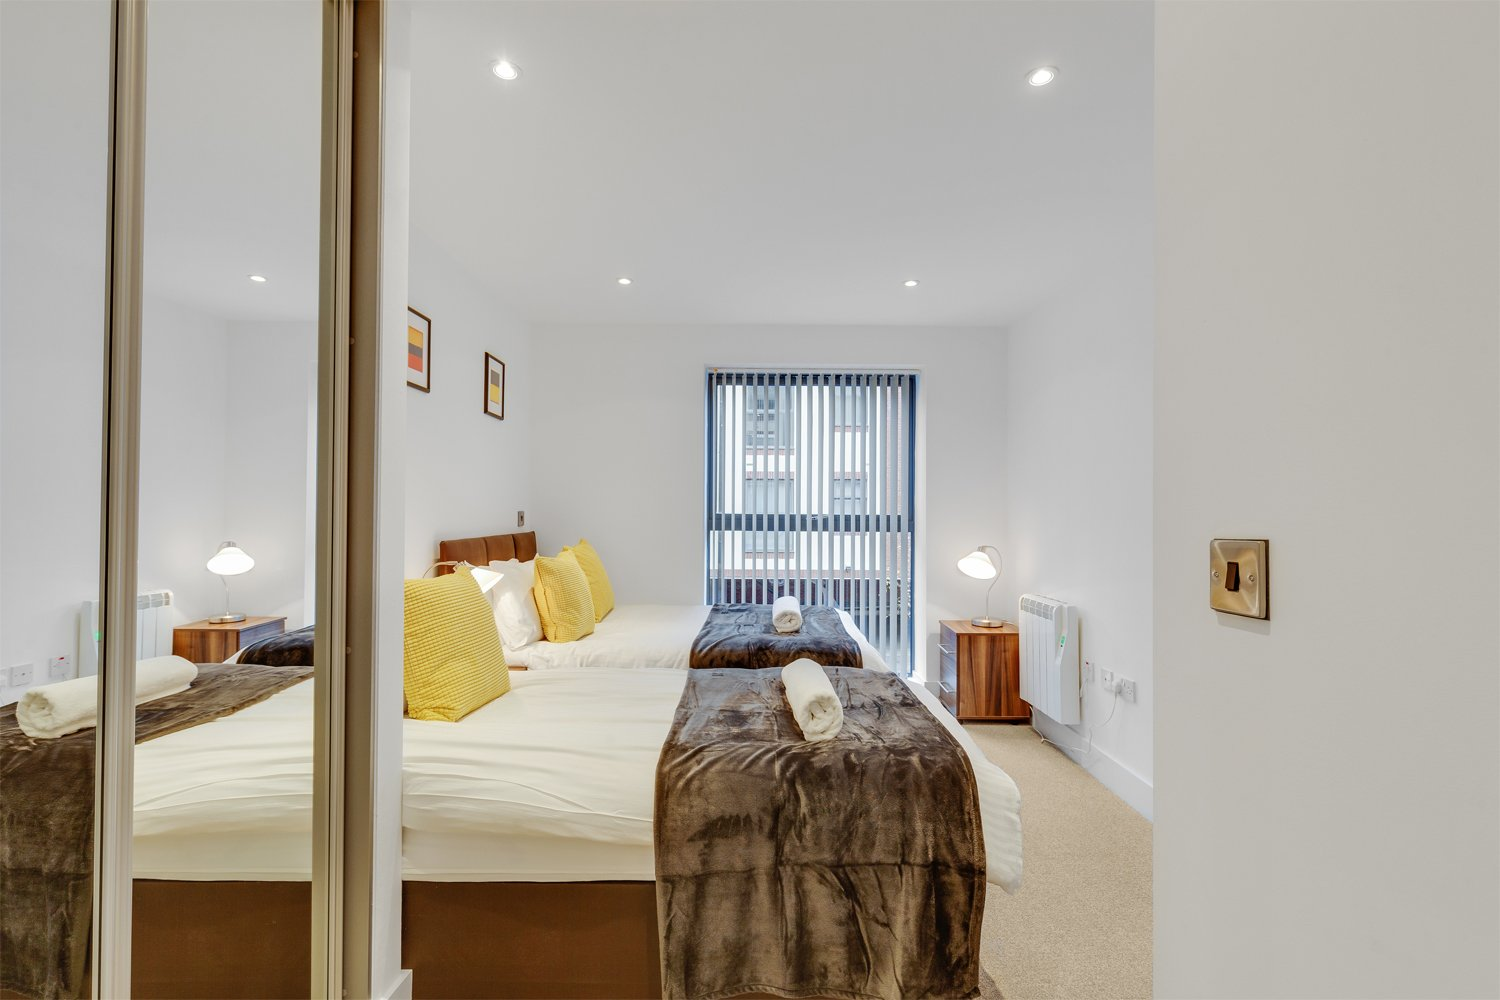 Book-the-Best-Serviced-Apartments-Birmingham-today!-Our-Short-Let-Accommodation-in-Birmingham's-Jewellery-Quarter---Free-Wifi-&-All-Bills-Incl!-30%-Cheaper!-Urban-Stay